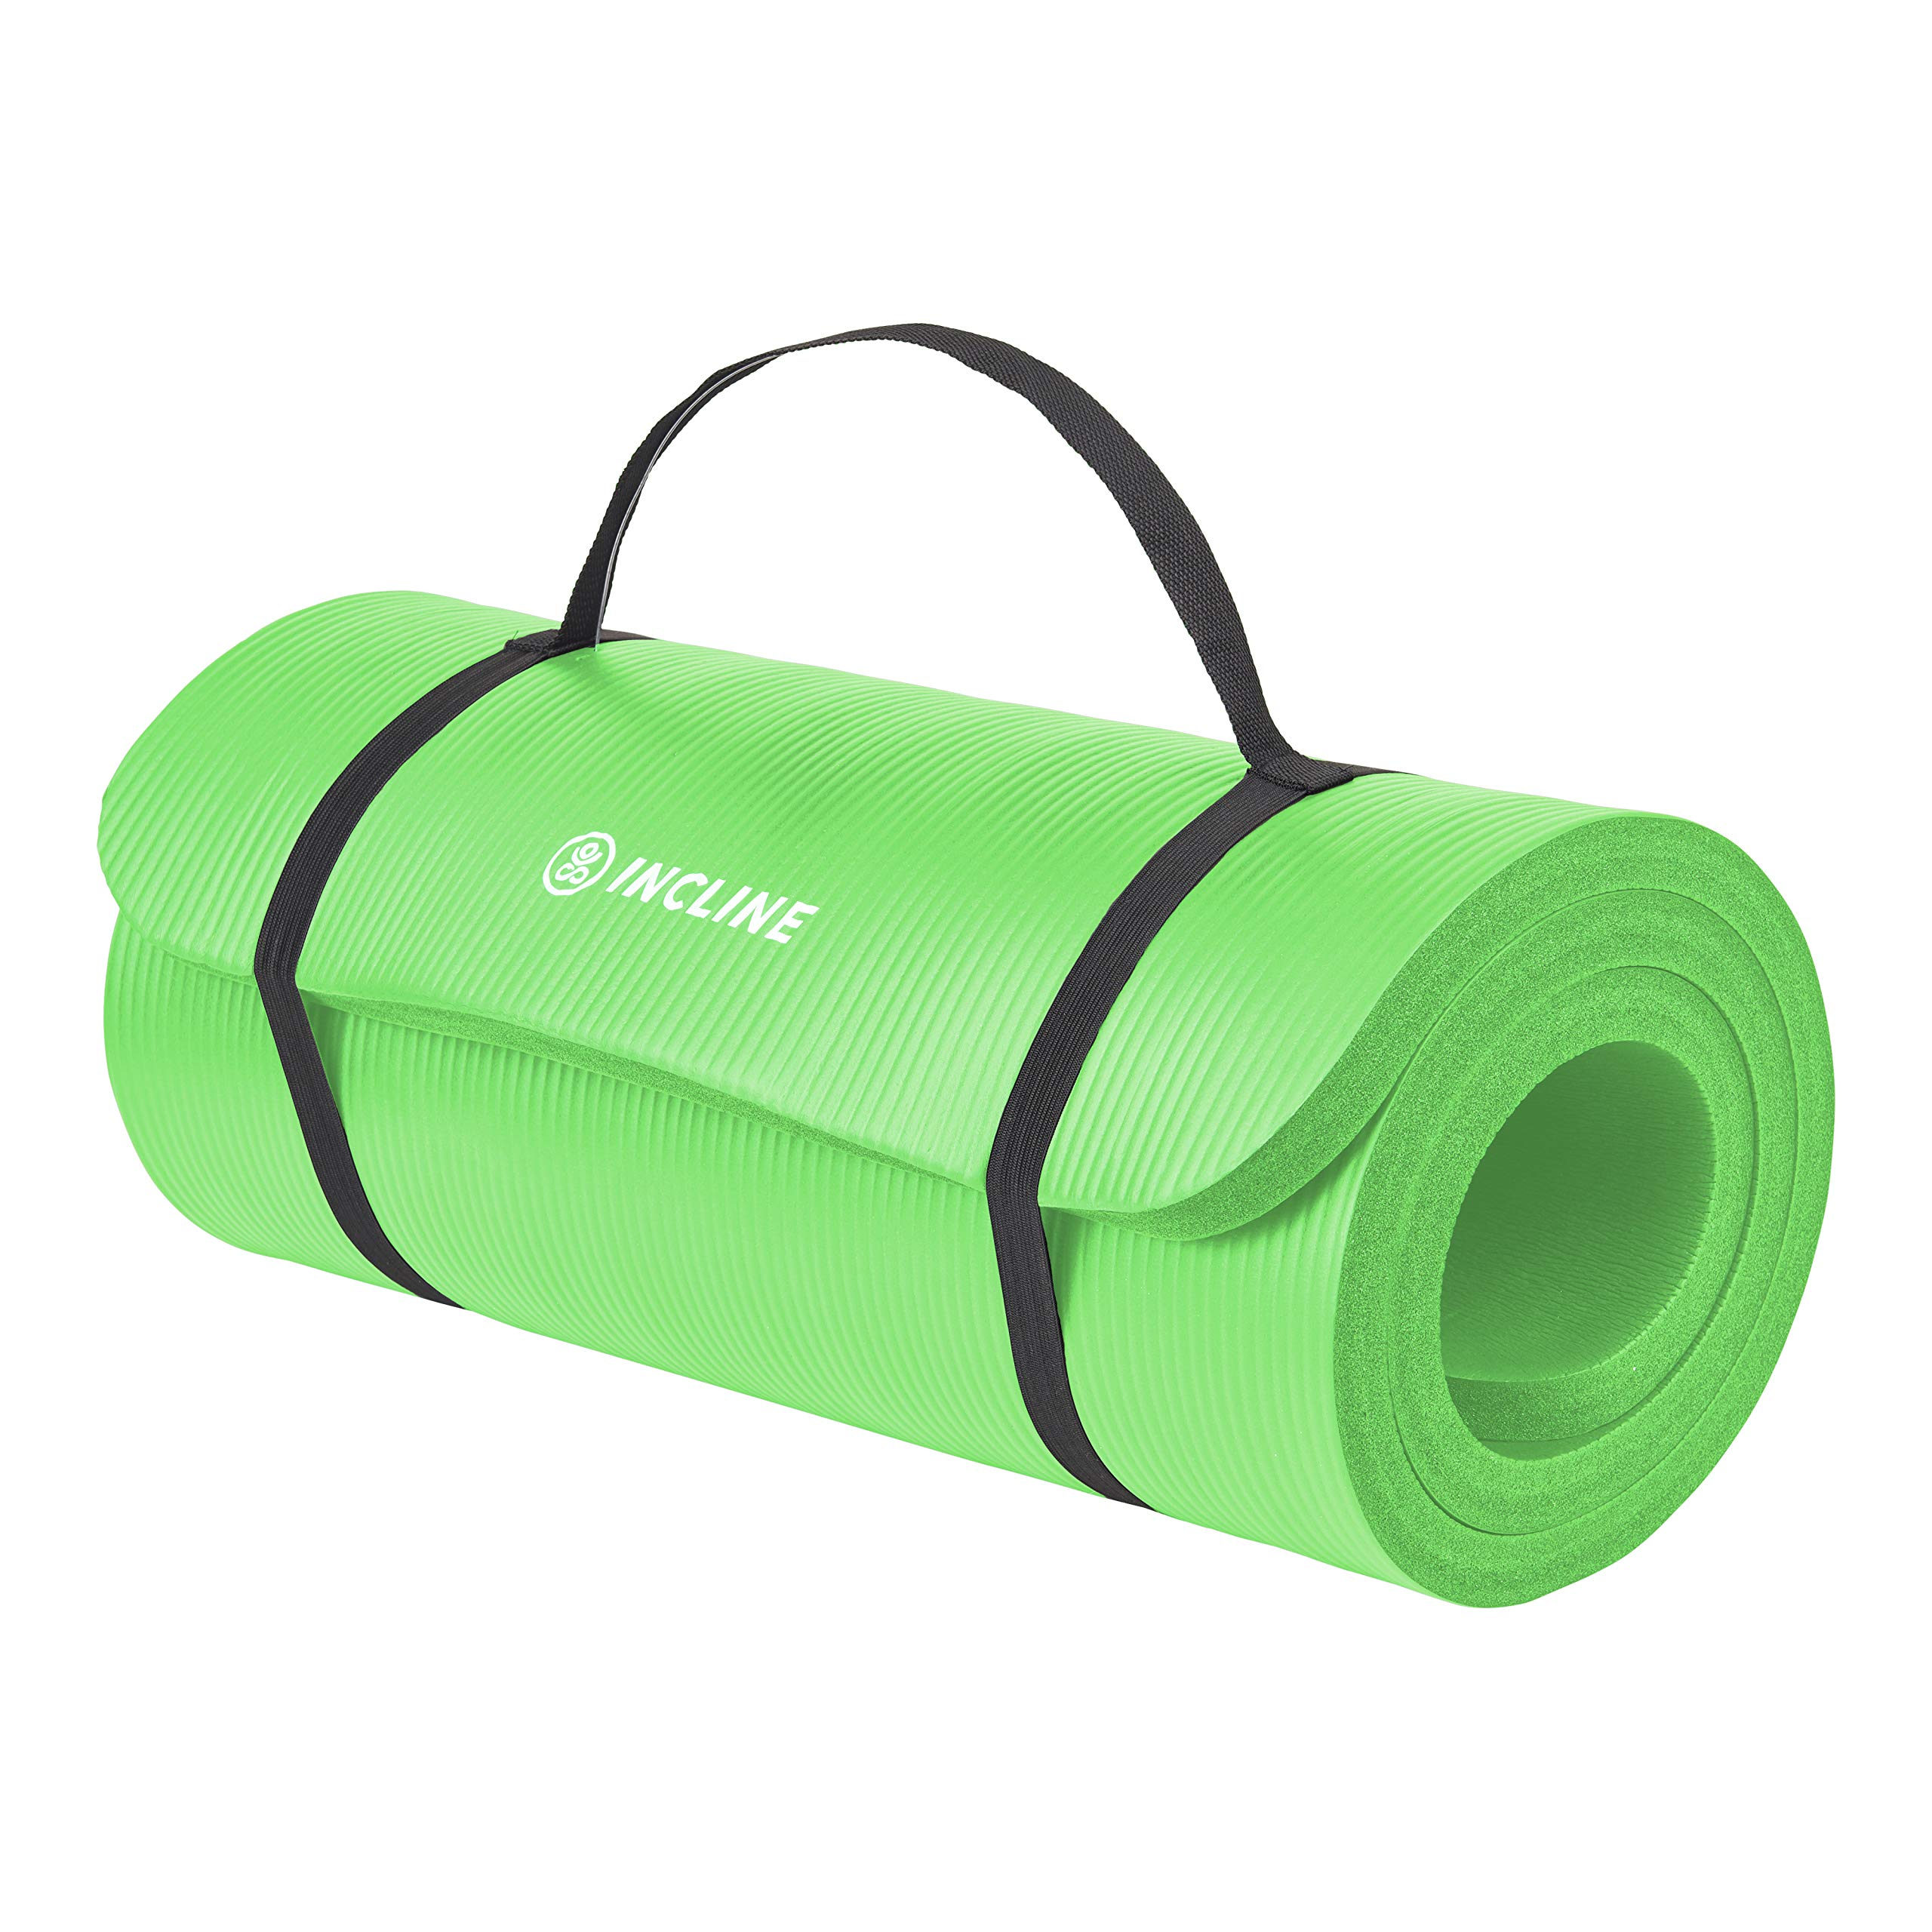 Incline Fit Exercise Mat Ananda 1'' Extra Thick Exercise Mat with Strap - Non Slip Workout Mat for Yoga, Pilates, Stretching, Meditation, Floor & Fitness Exercises